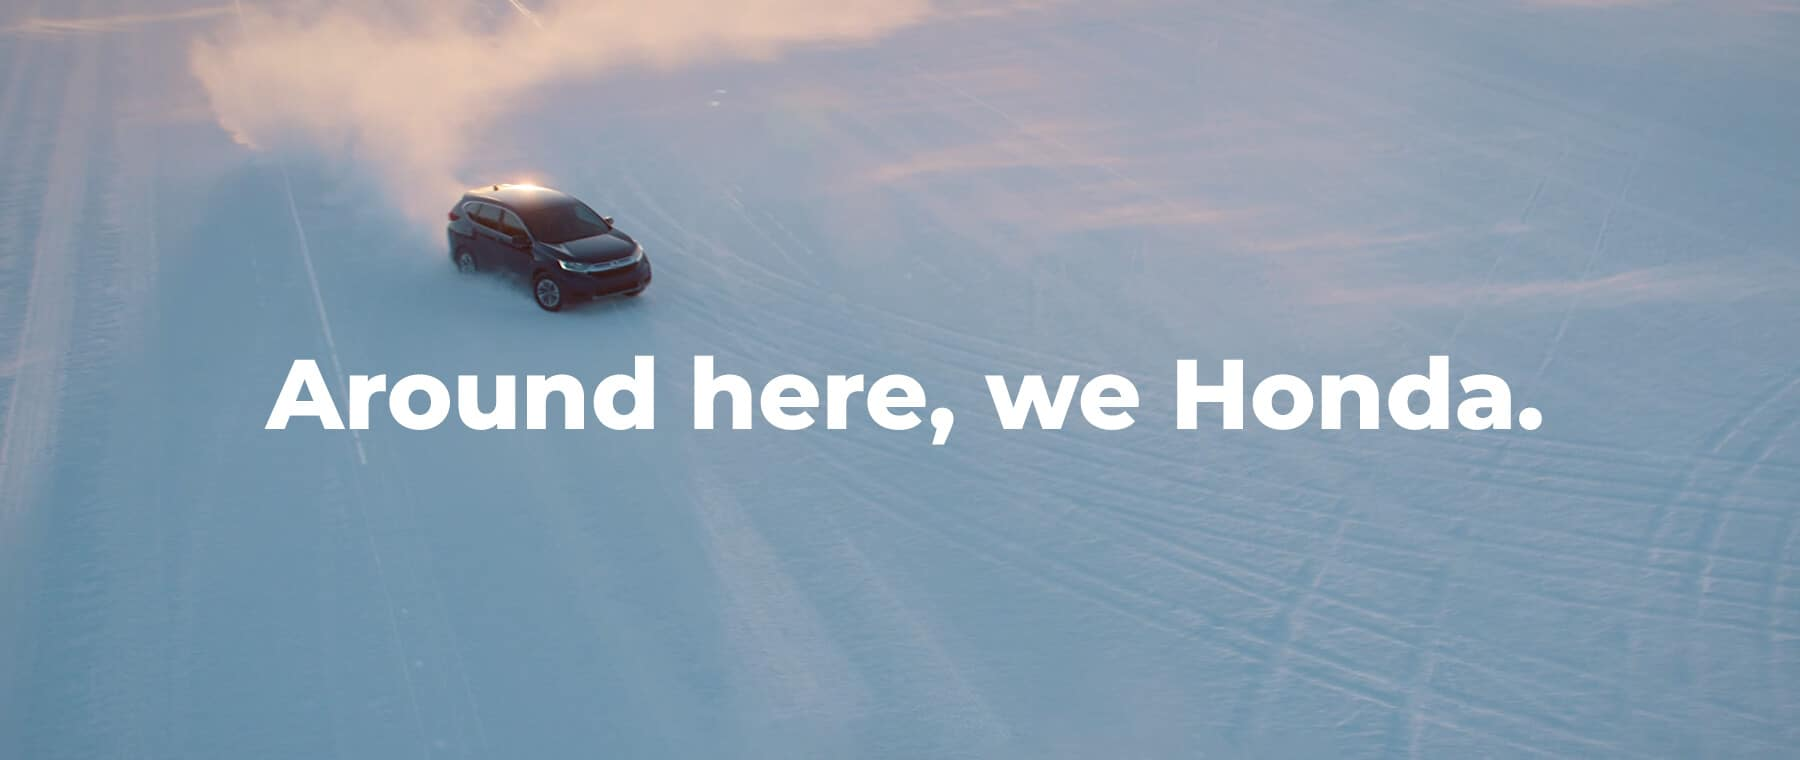 New England Honda Dealers - Around Here, We Honda